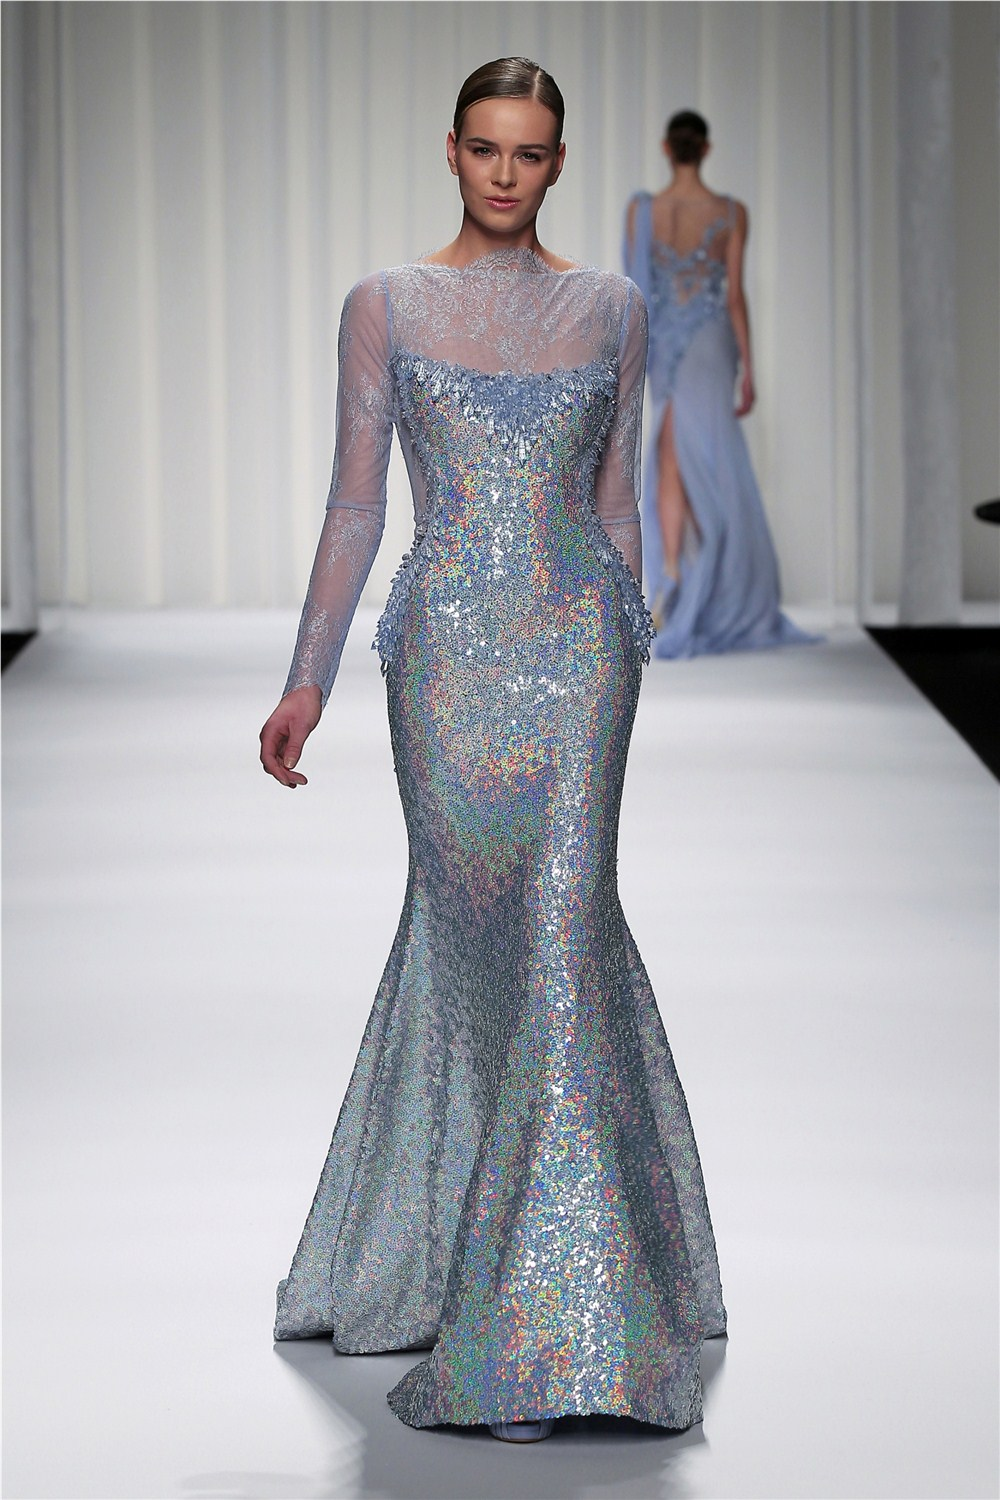 abed mahfouz 2013 haute couture collection